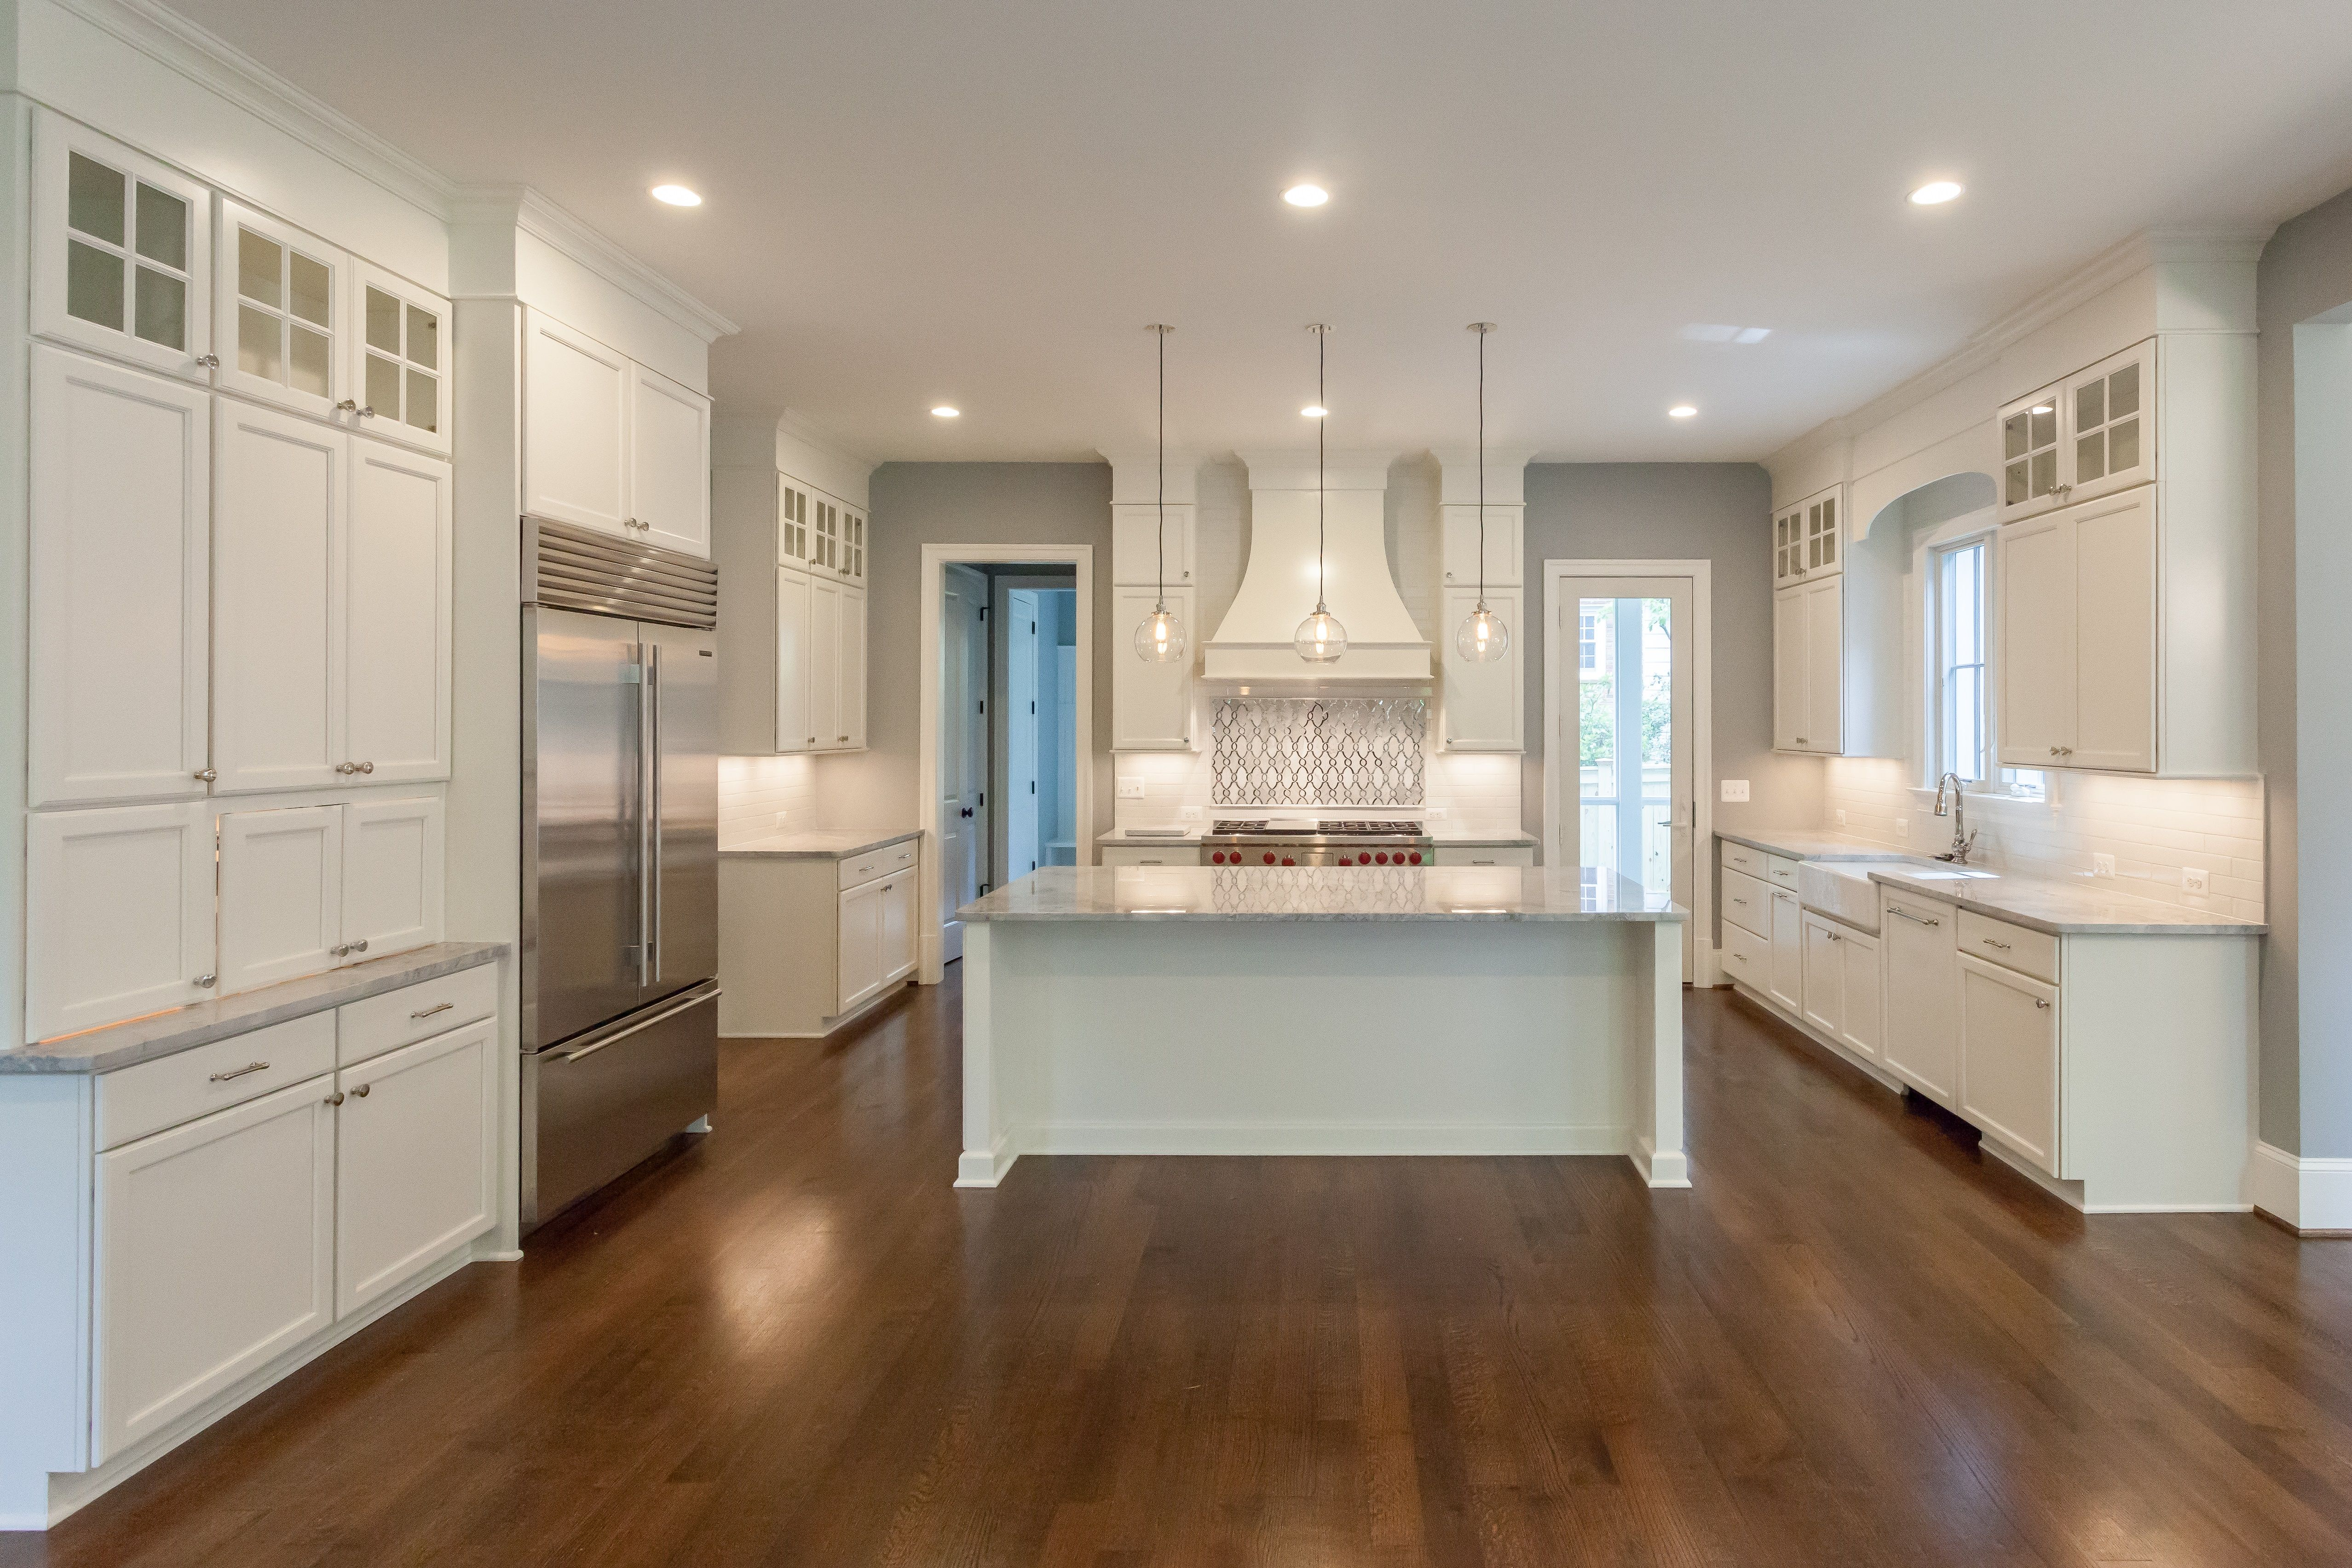 All White Transitional Kitchen With Feature Backsplash Over Range And Double Stacked Cabi Kitchen Cabinet Inspiration Kitchen Cabinets Kitchen Bathroom Remodel